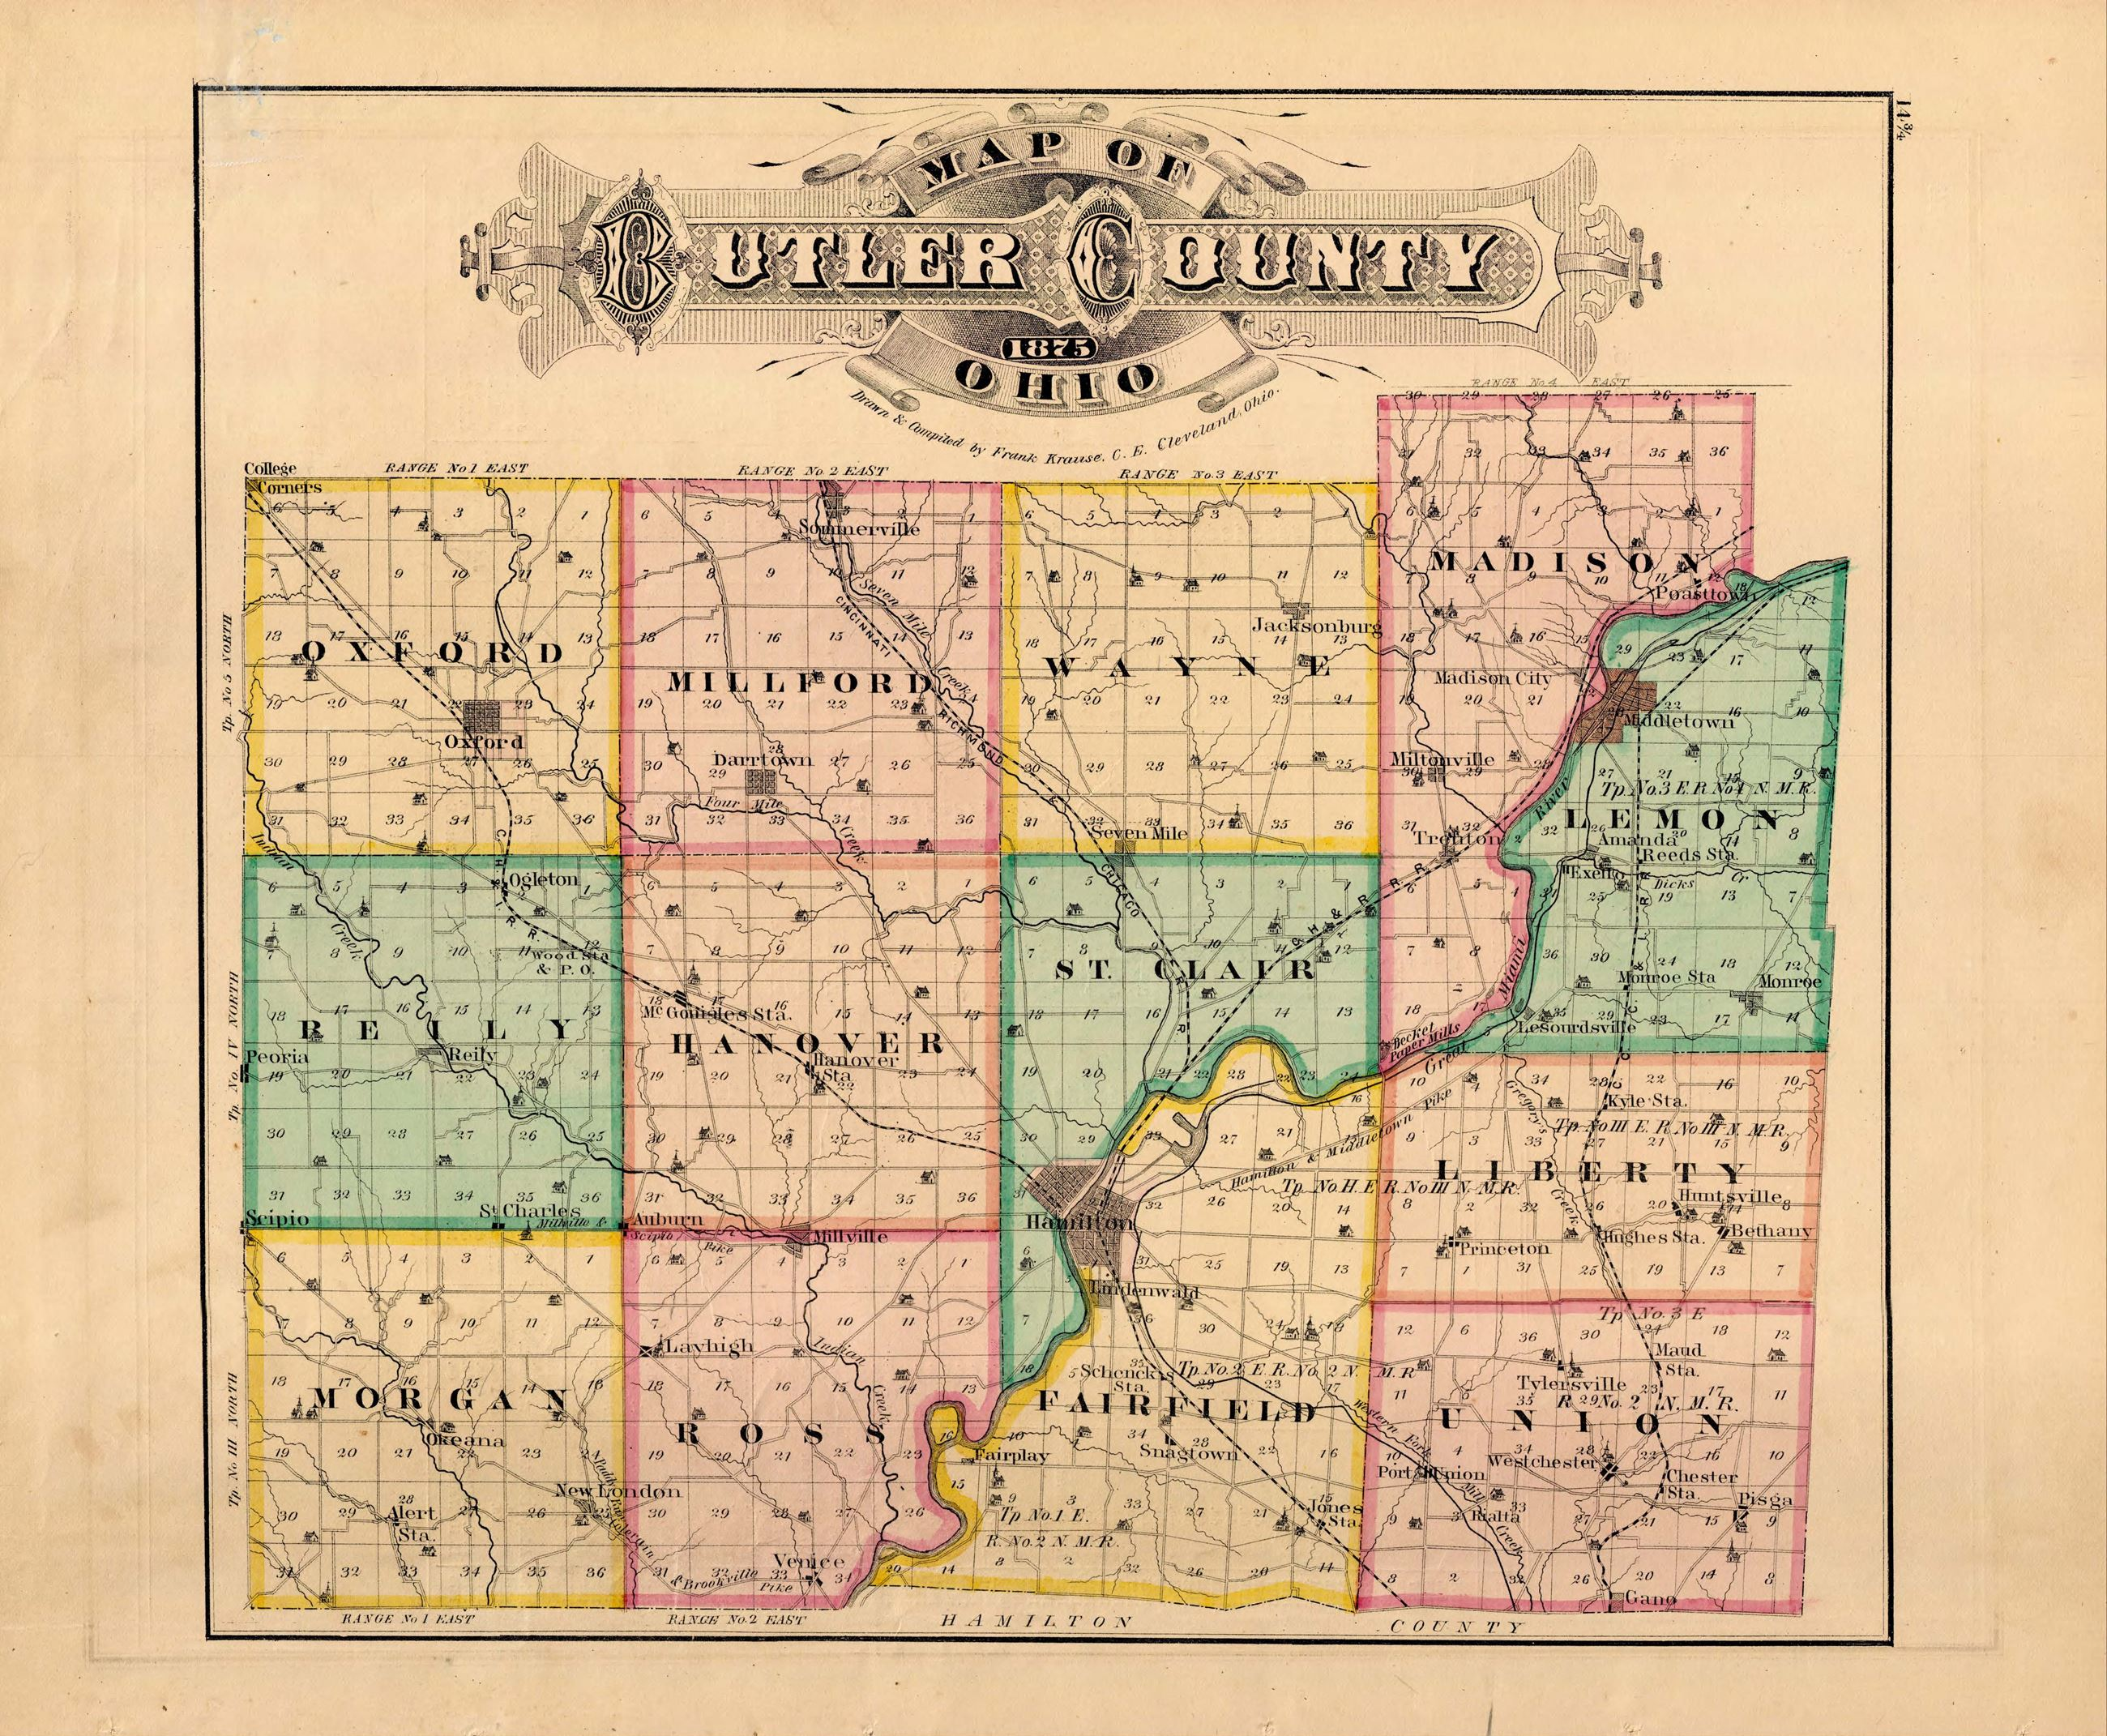 9 14 3-4 Butler County Map